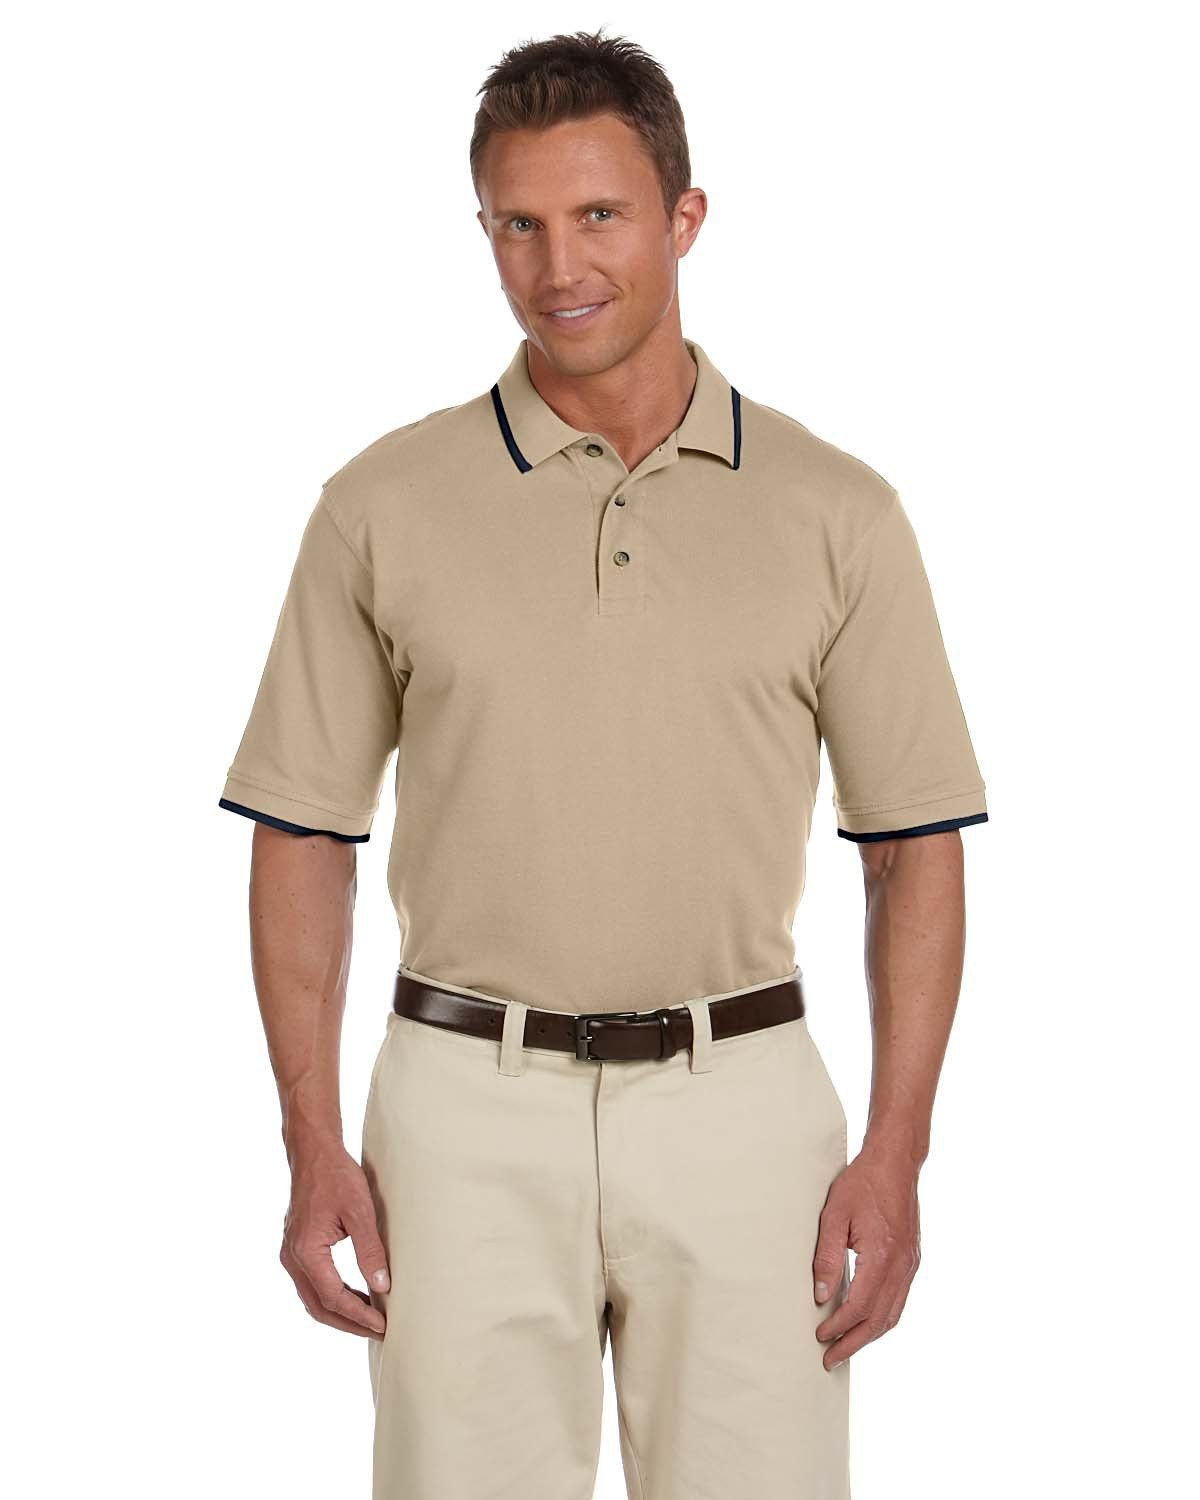 Harriton Adult 6 oz. Short-Sleeve Piqué Polo with Tipping STONE/ NAVY